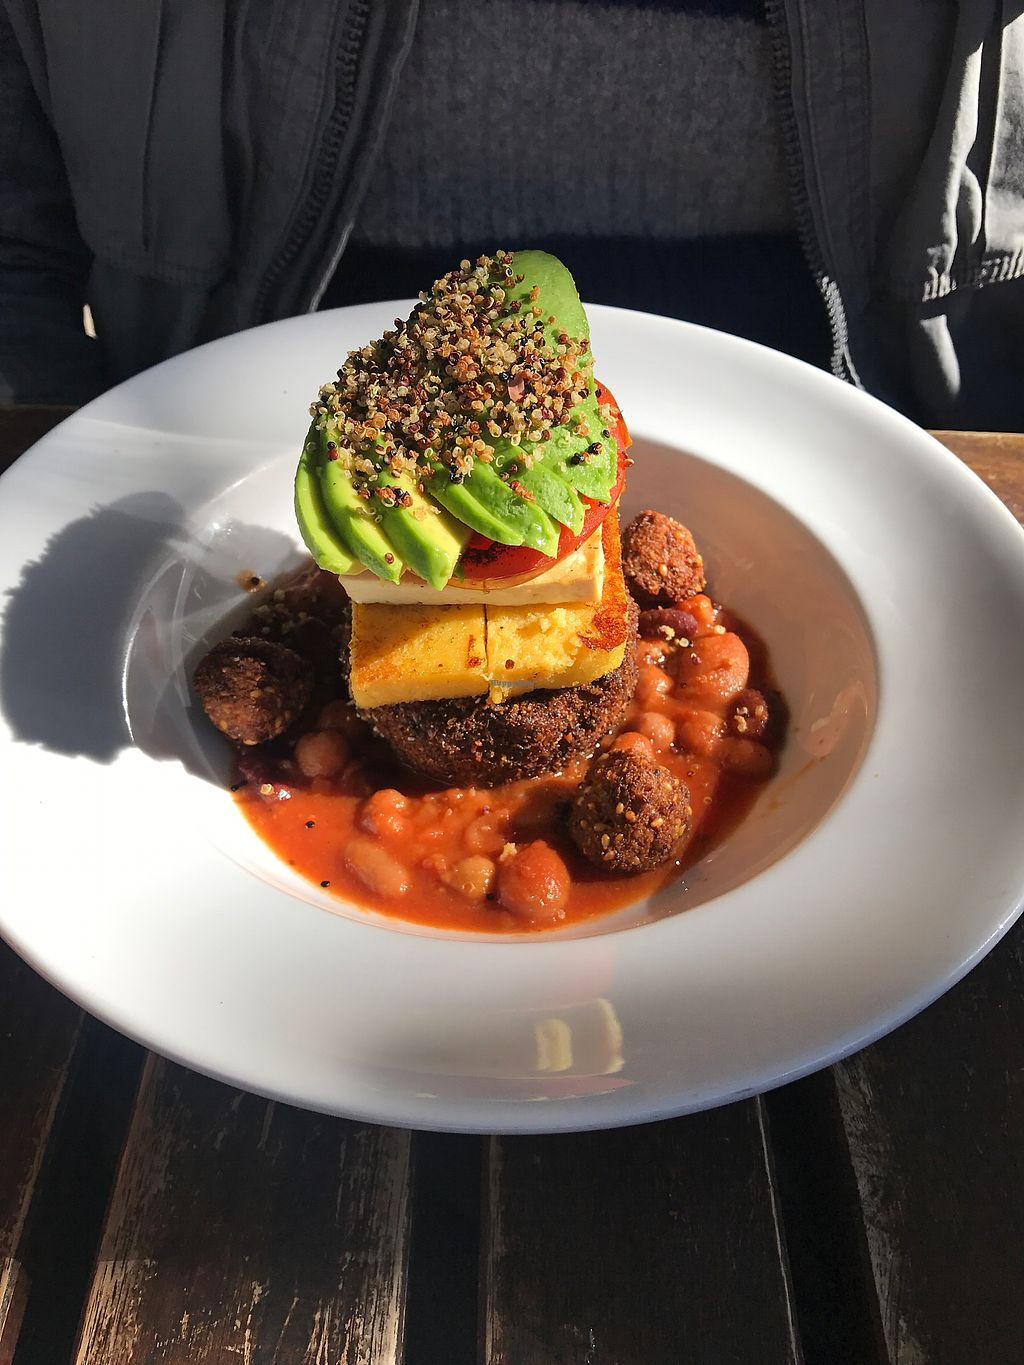 """Photo of Mad Spuds  by <a href=""""/members/profile/Lozcriston"""">Lozcriston</a> <br/>vegan Stack  <br/> July 24, 2017  - <a href='/contact/abuse/image/31768/284113'>Report</a>"""